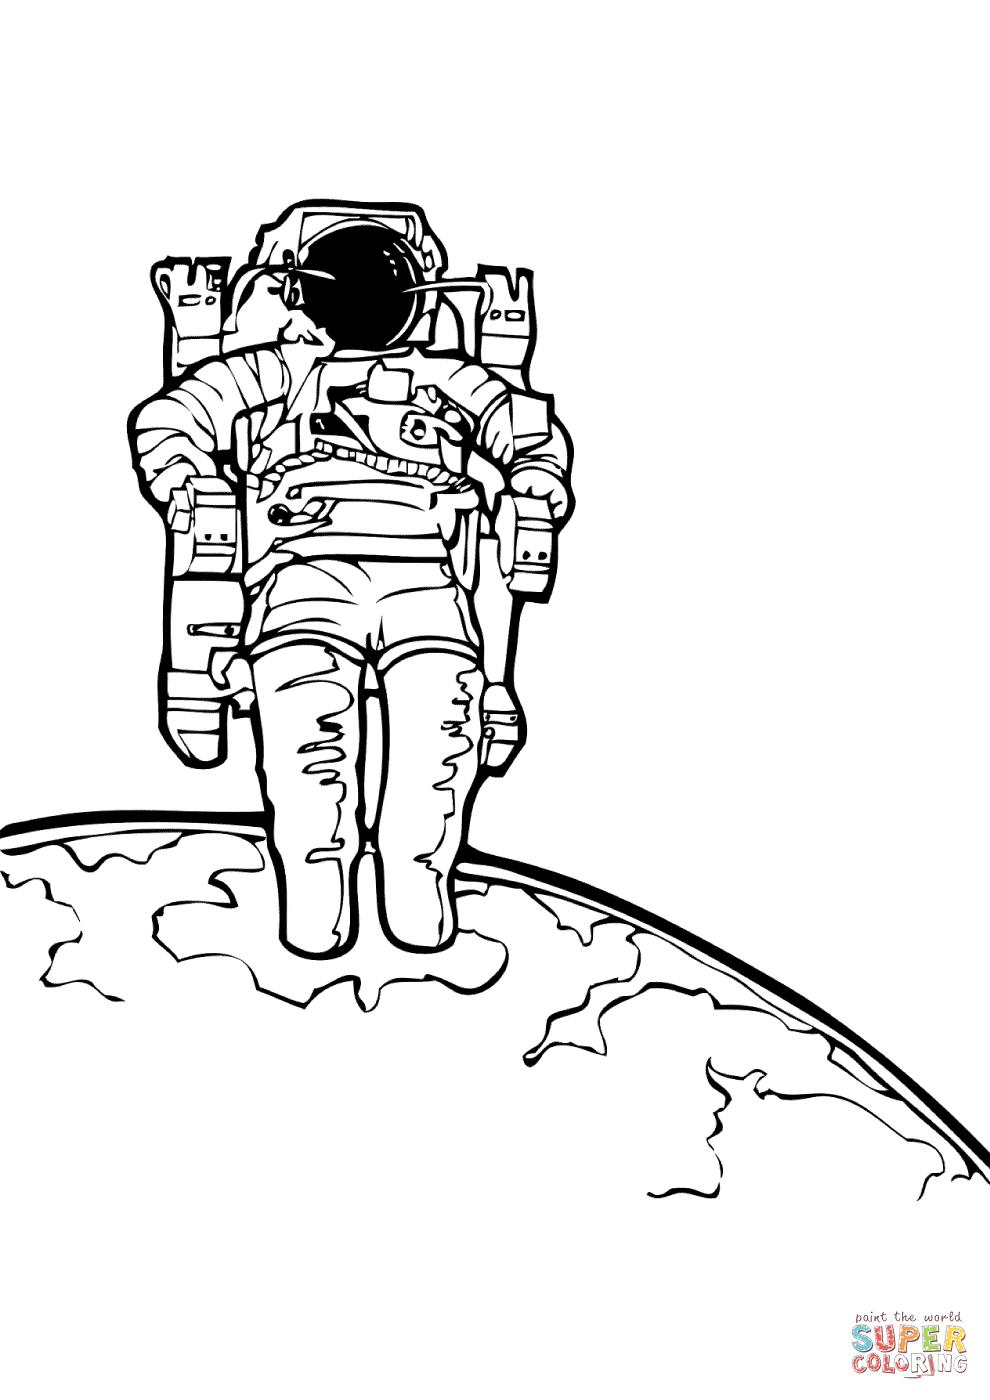 astronaut in the outer space coloring page free printable - Astronaut Coloring Pages Printable